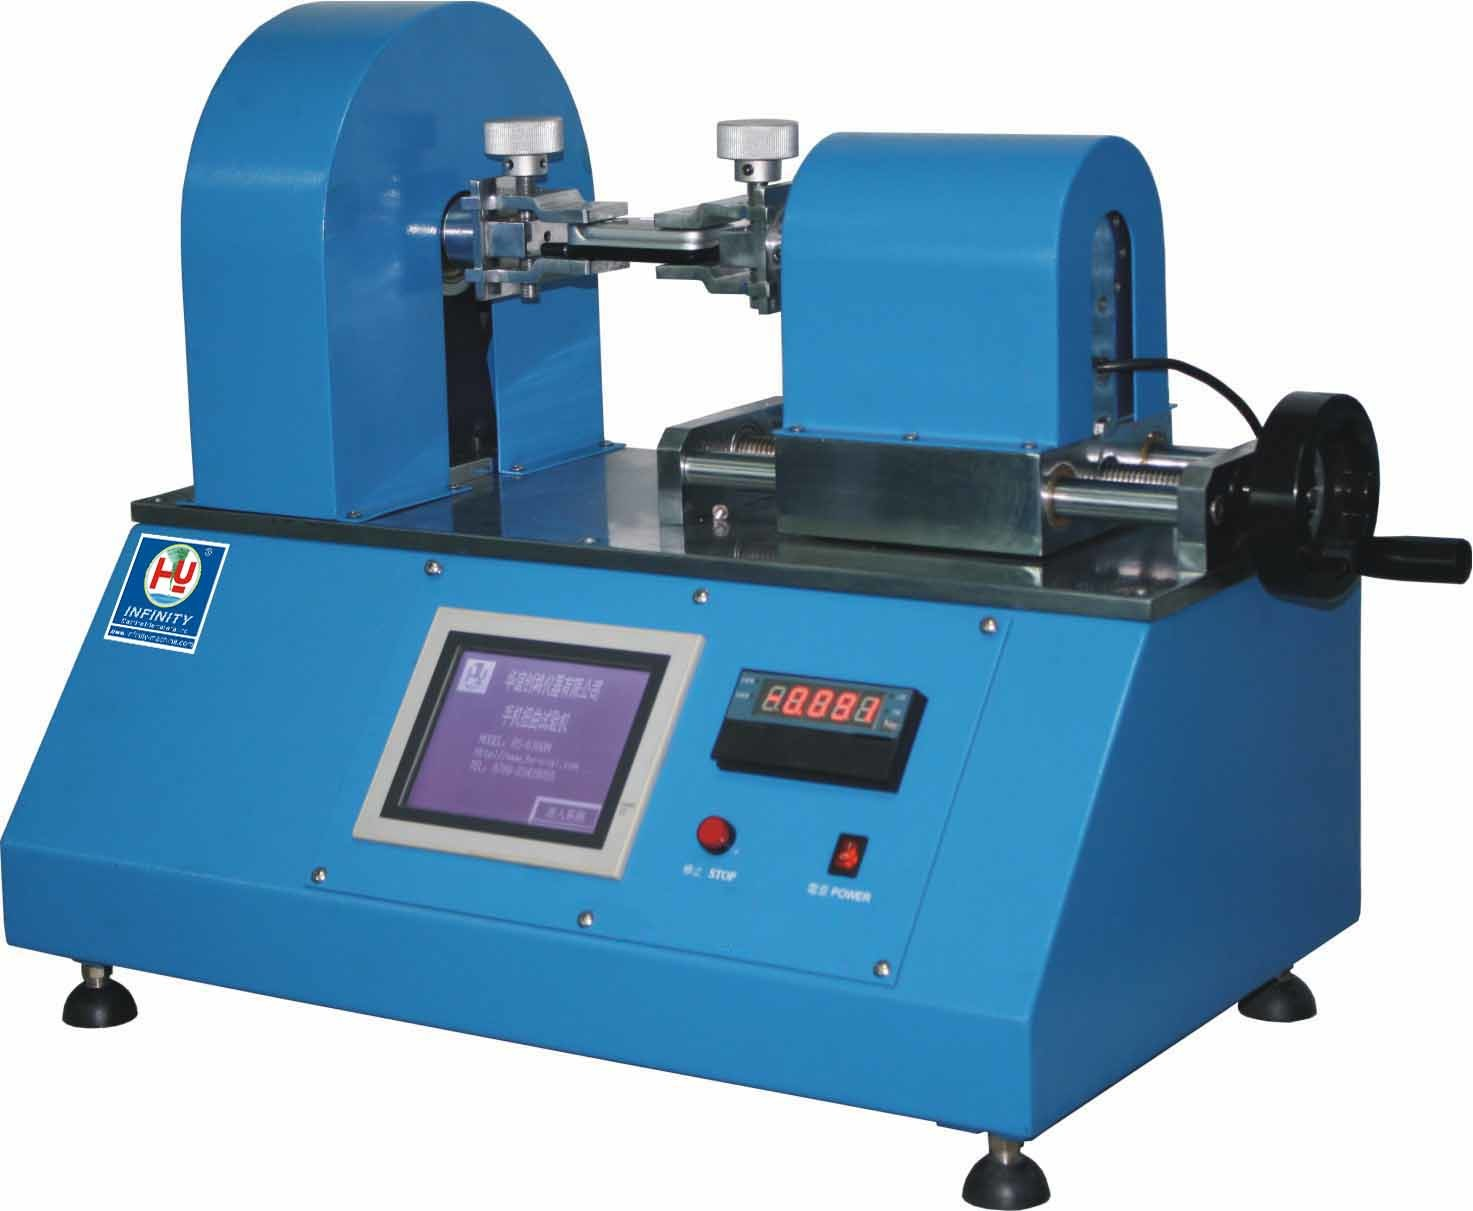 Mobile Phone Torque Testing Machine , Digital Torque Tester 0.3Nm -5Nm